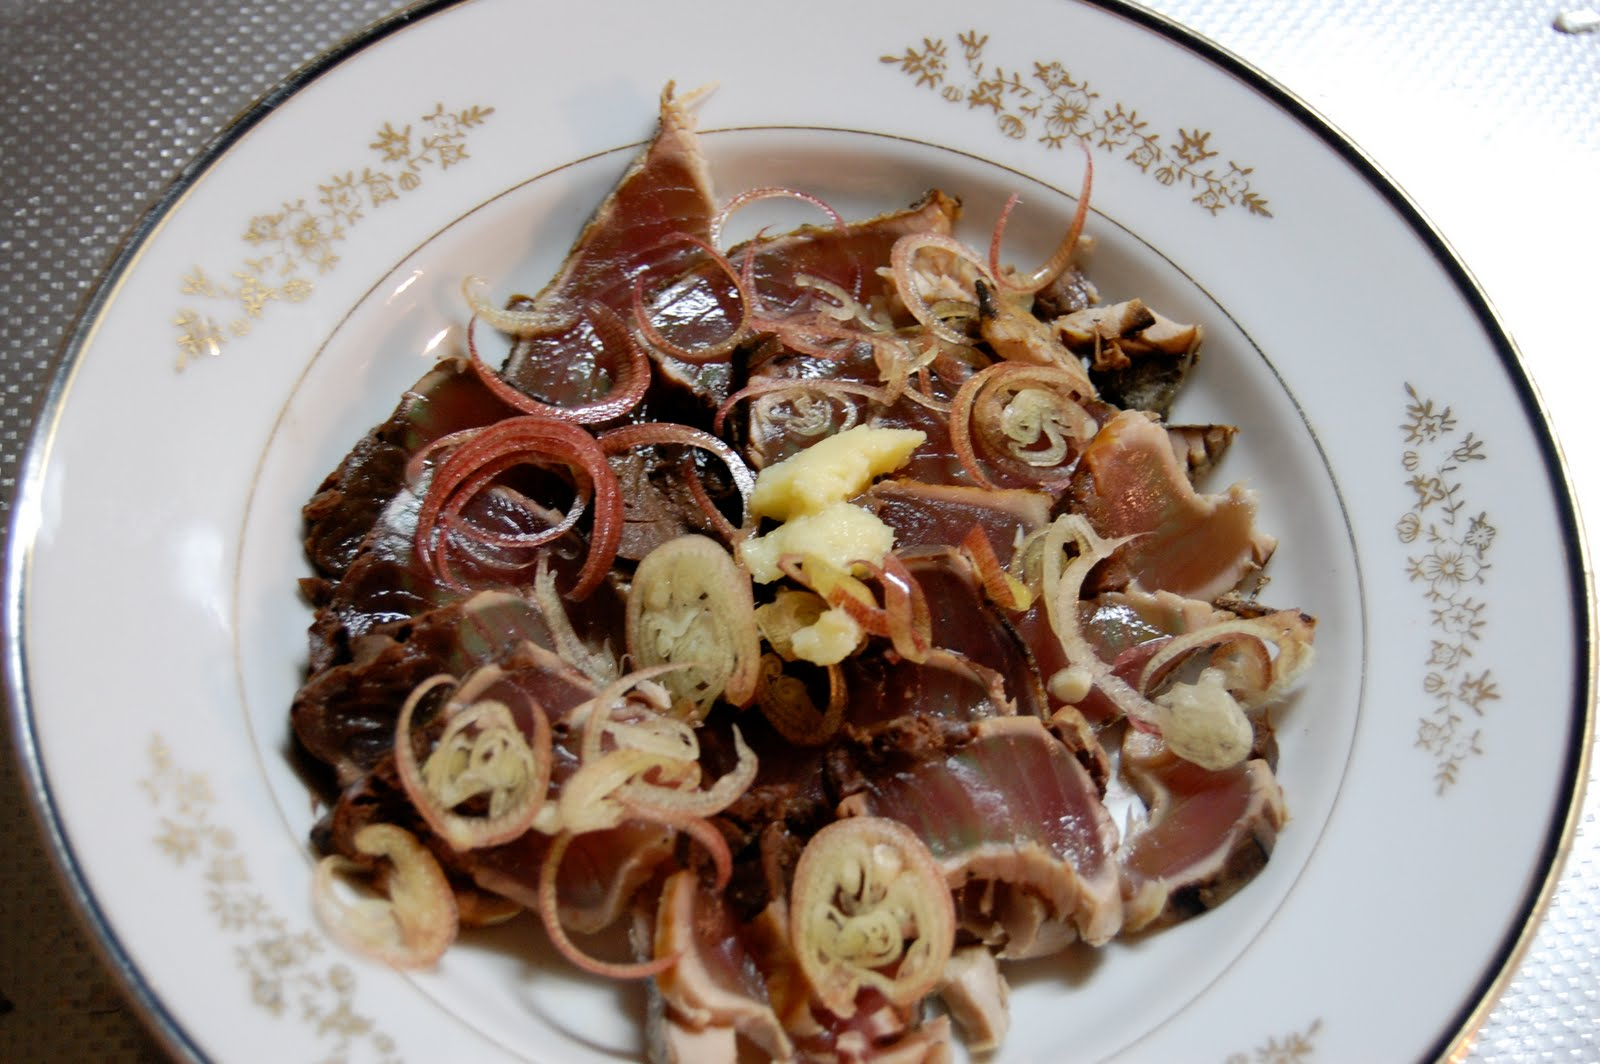 Seafood recipe katsuo tataki japanese cuisine famous for its funky aroma which is best toned down on the plate with some thinly sliced myoga and grated ginger katsuo is in season twice forumfinder Gallery